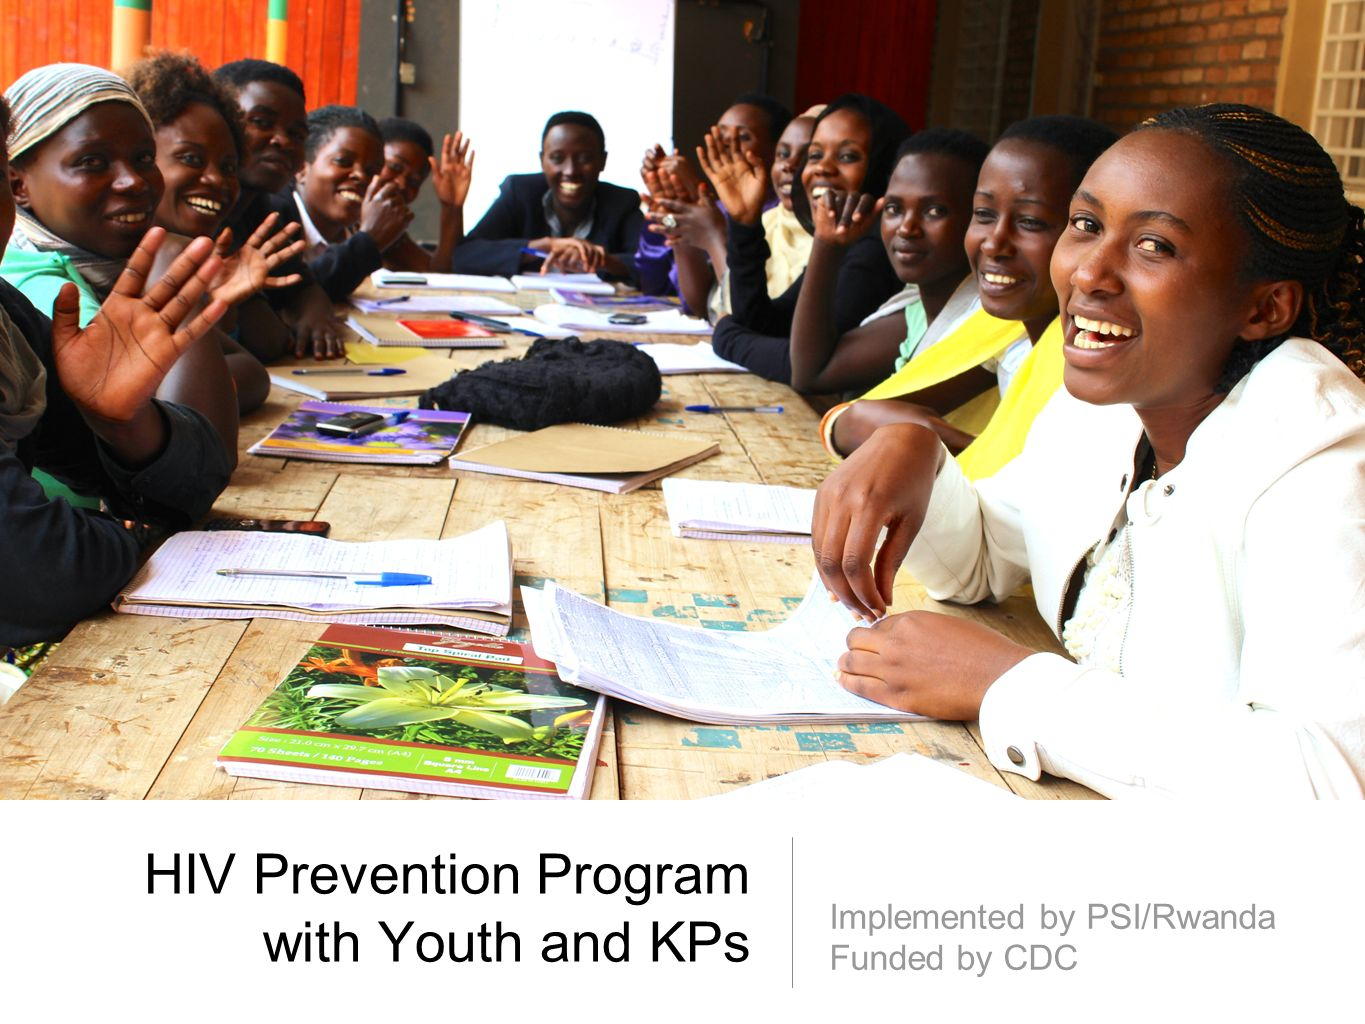 HIV Prevention Program with Youth and KPs Implemented by PSI/Rwanda Funded by CDC